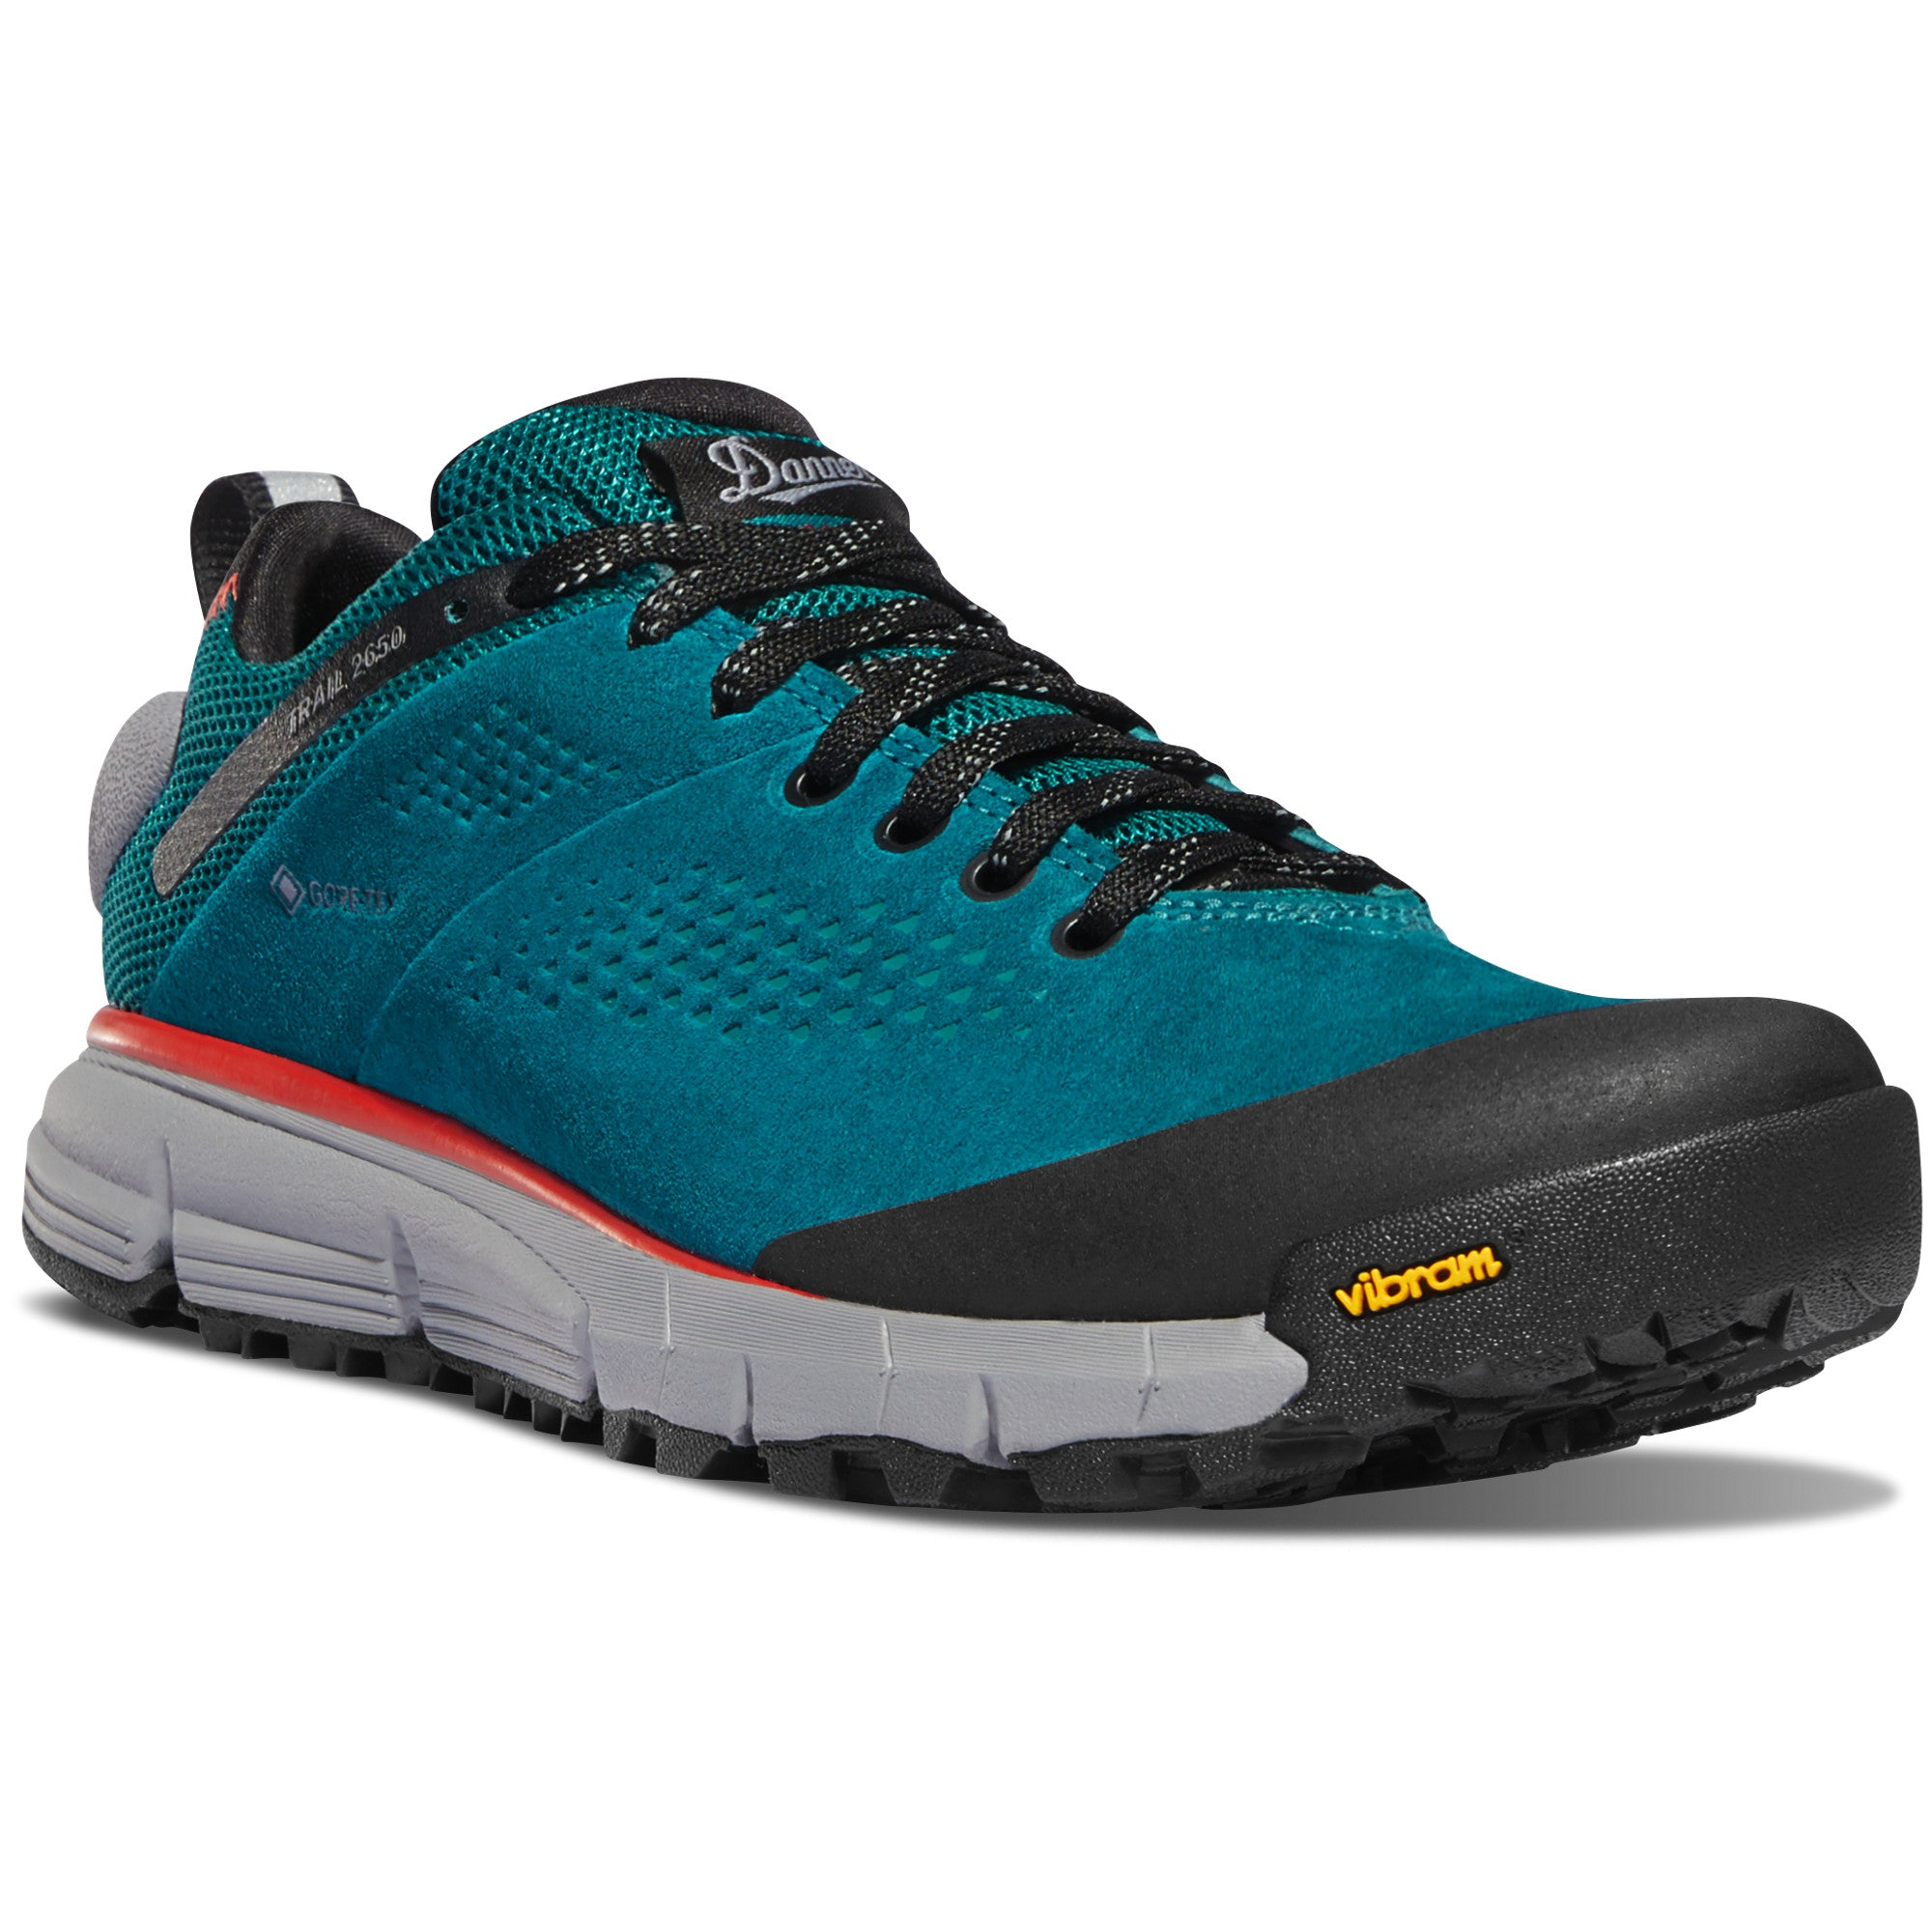 "Danner Women's Trail 2650 3"" Gore-Tex Waterproof Hiking Shoe in Current Blue from the side"